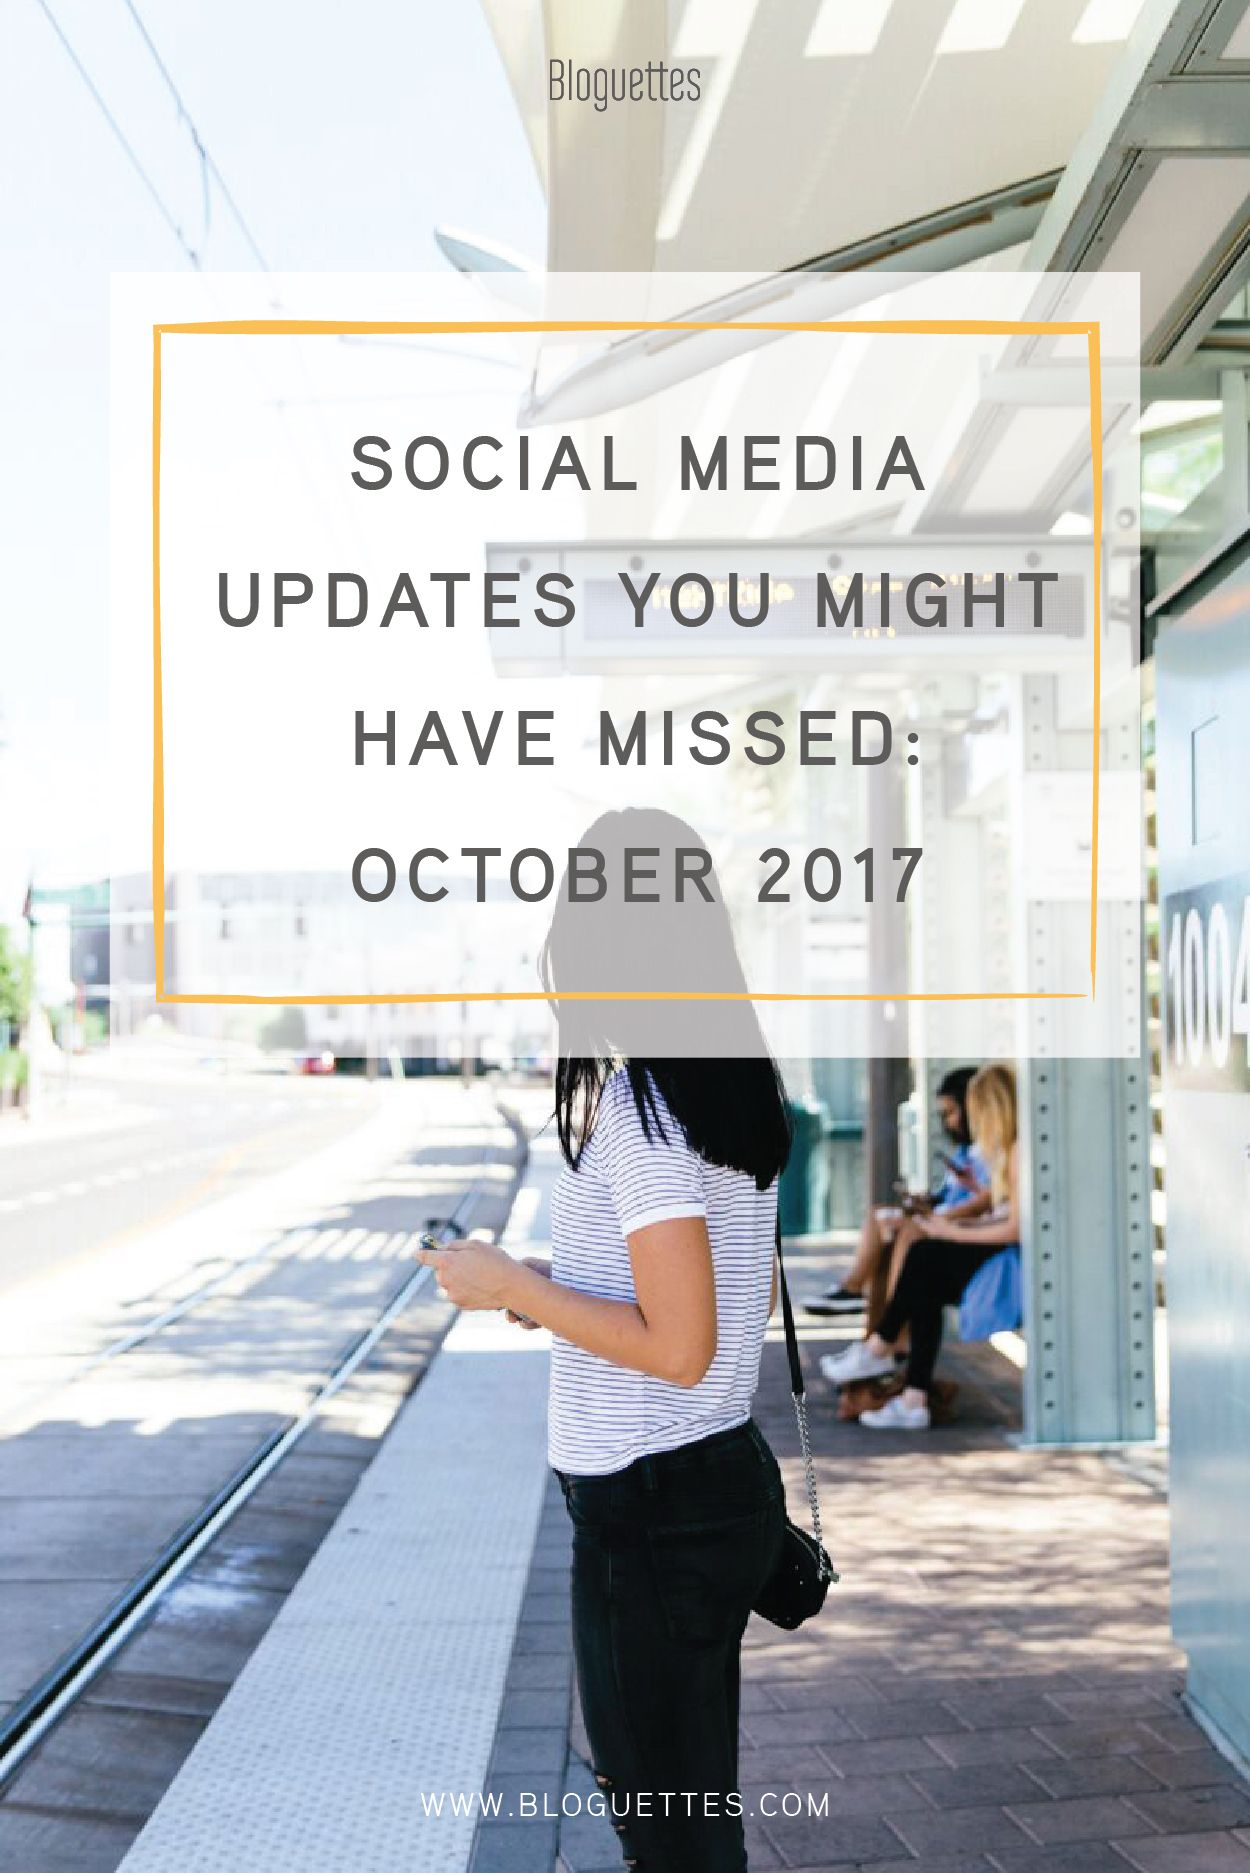 Social Media Updates You Might Have Missed October 2017